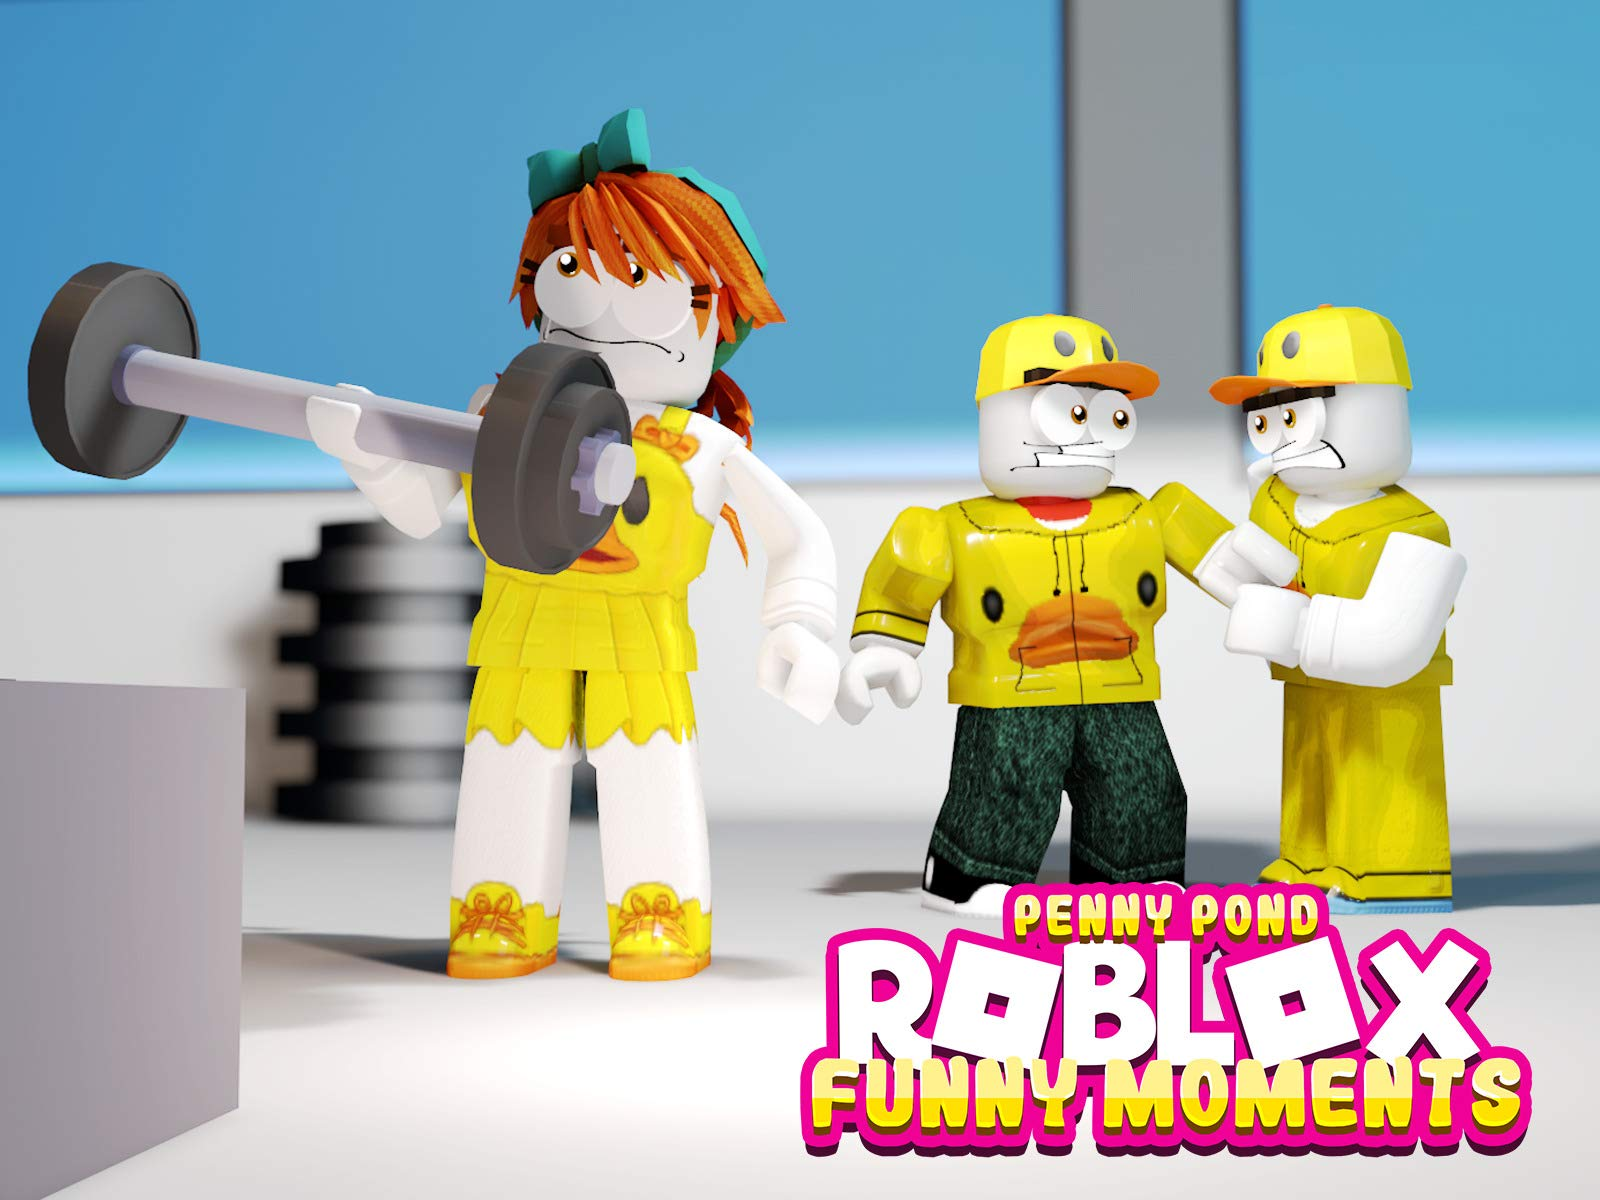 Clip: Roblox Funny Moments (Penny Pond) on Amazon Prime Video UK